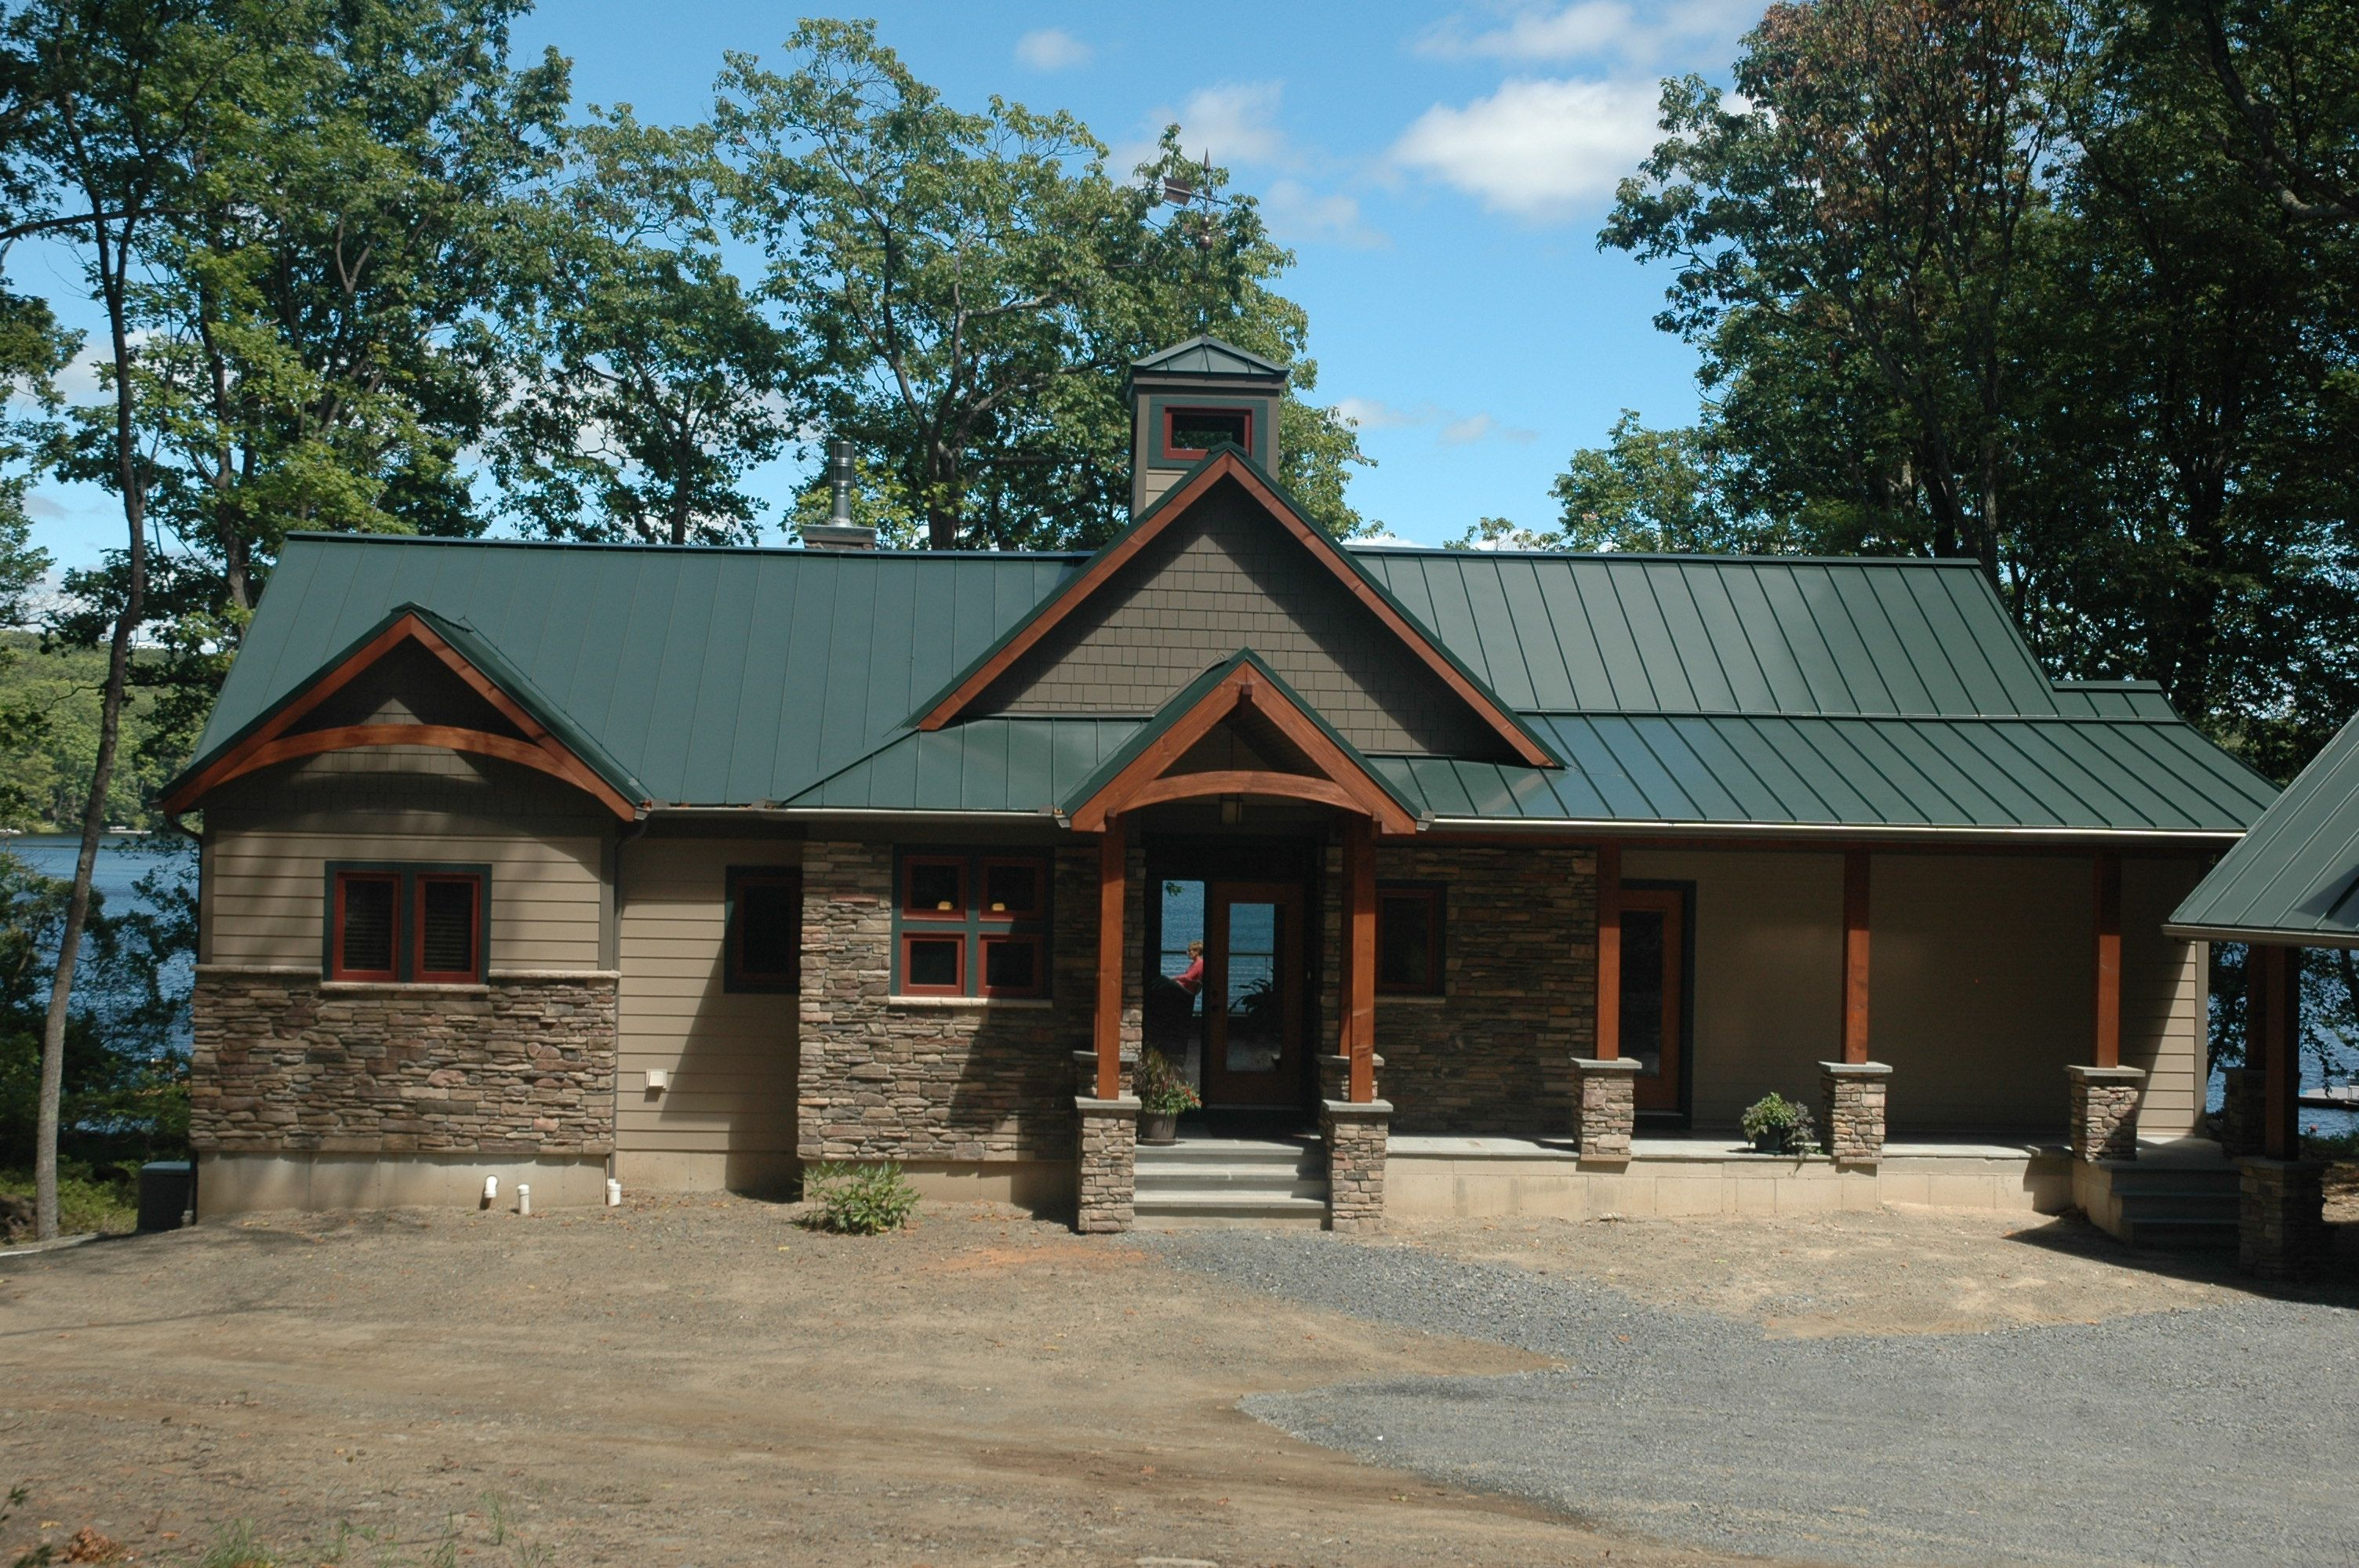 and has lakes bedroom pocono is arrowhead to out space your in perfect inside pool for entertain walk this moshannon plenty of elegant cabins chalet minisink sale bathroom getaway dsc